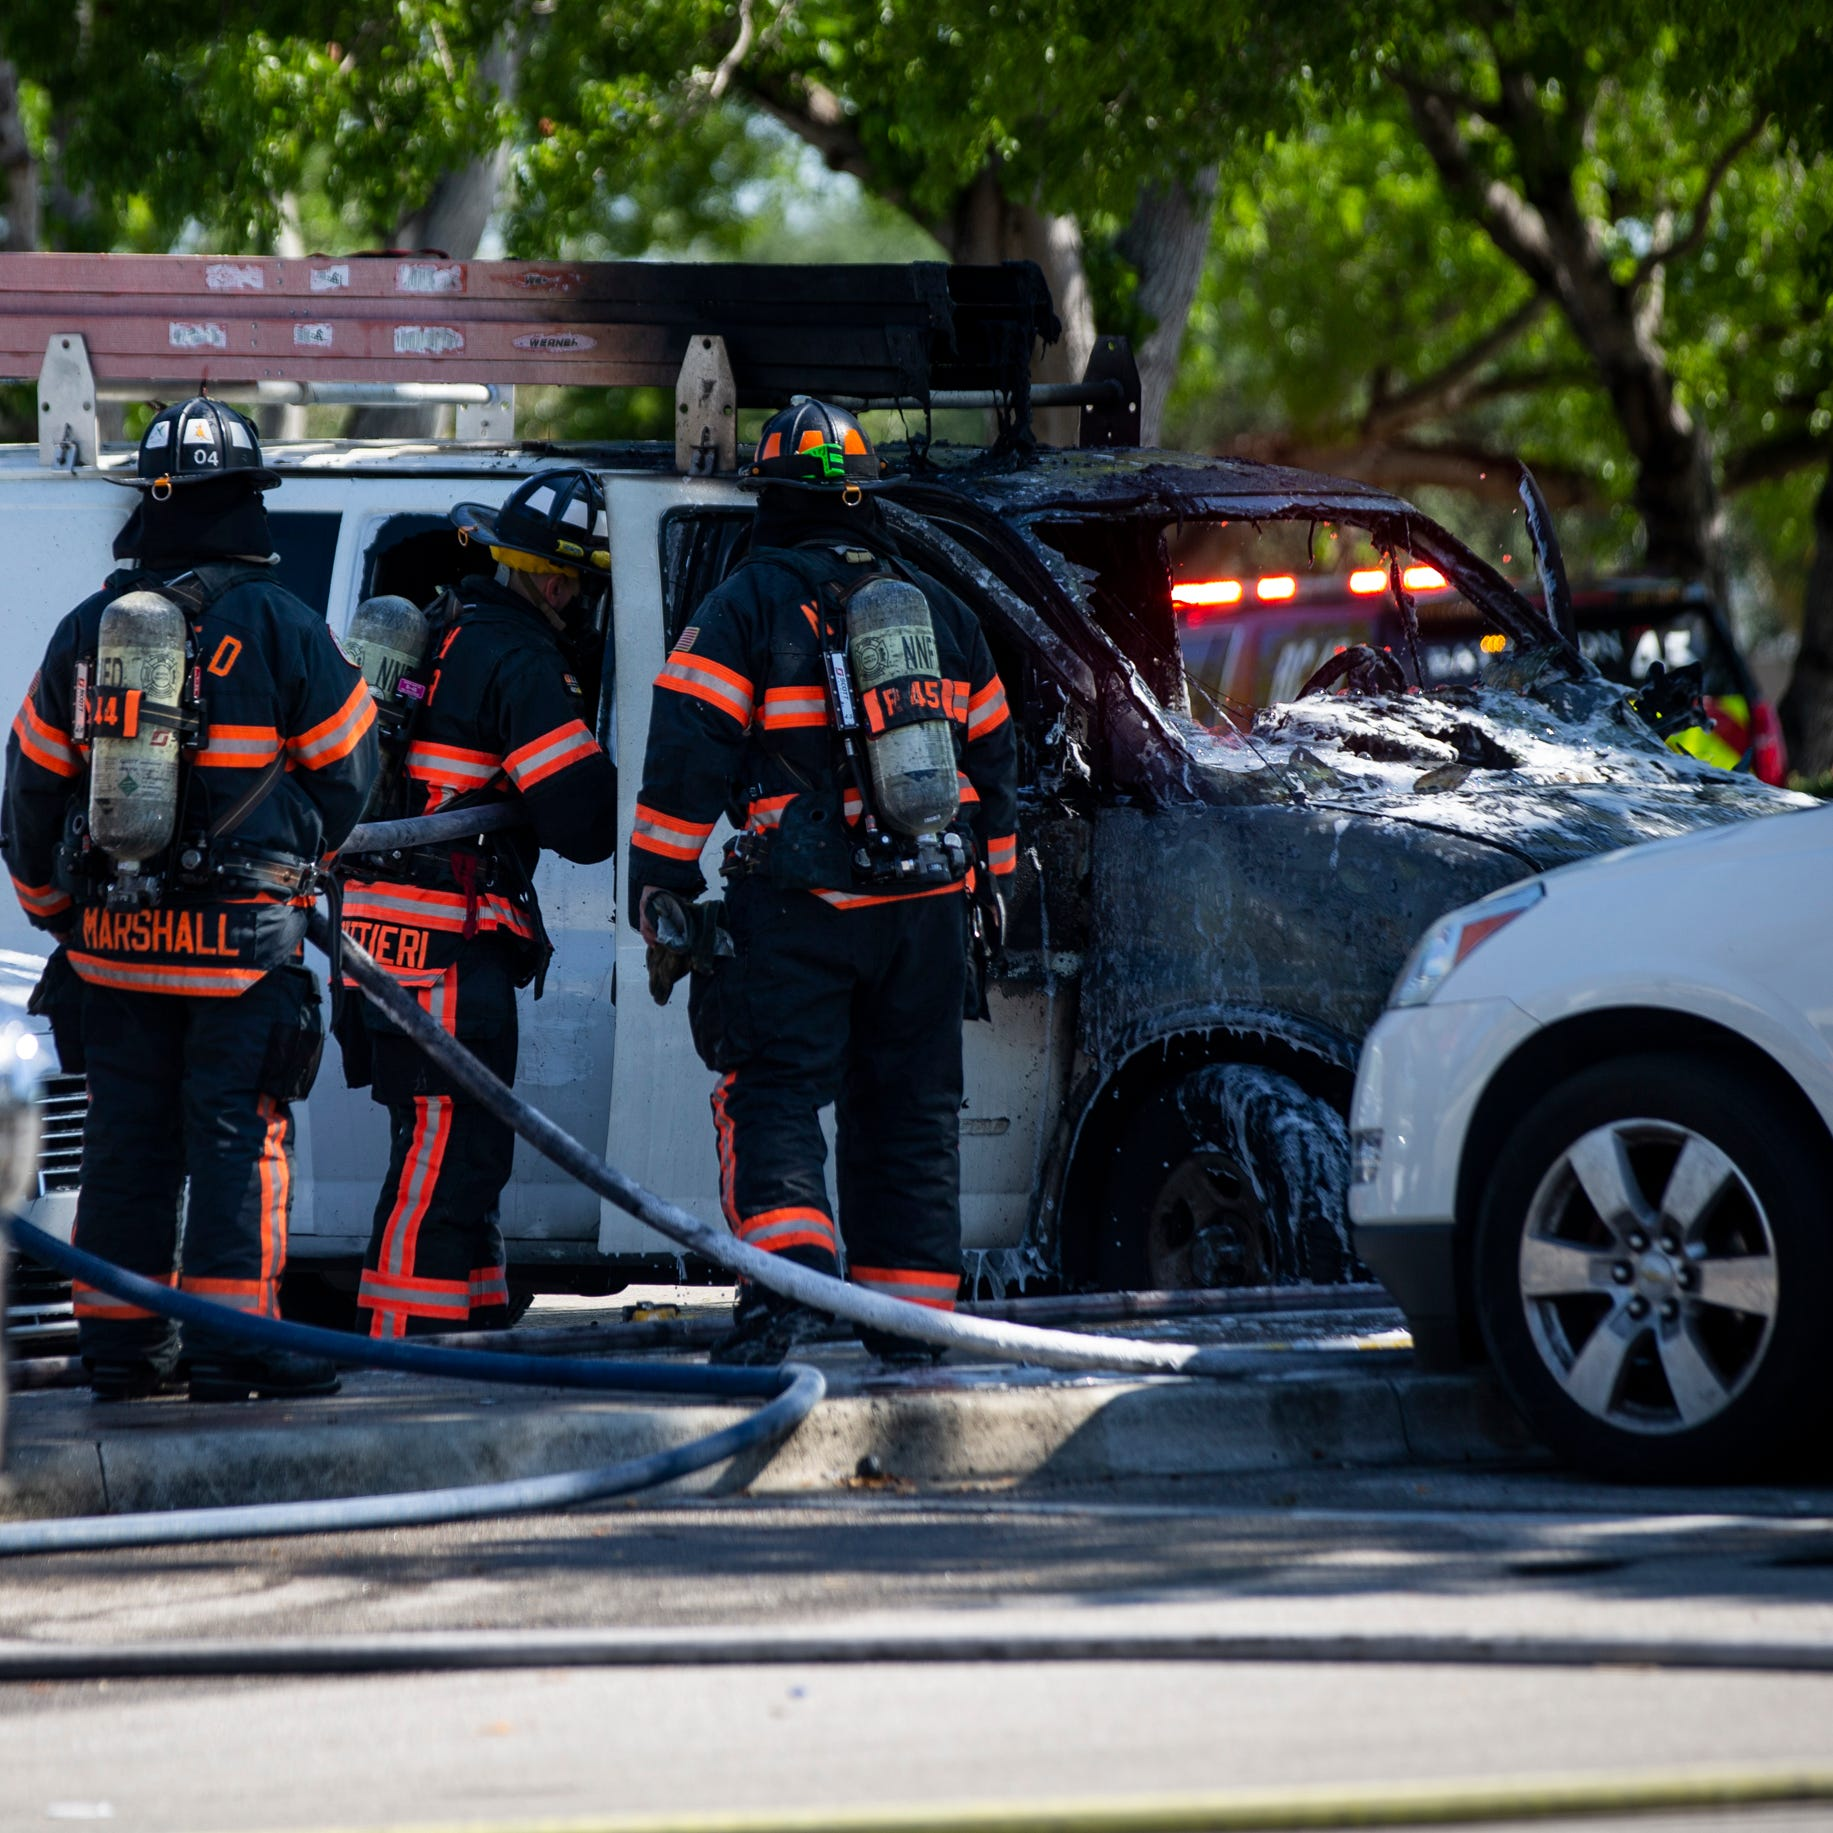 North Collier Fire responds to vehicle fire in Walmart parking lot